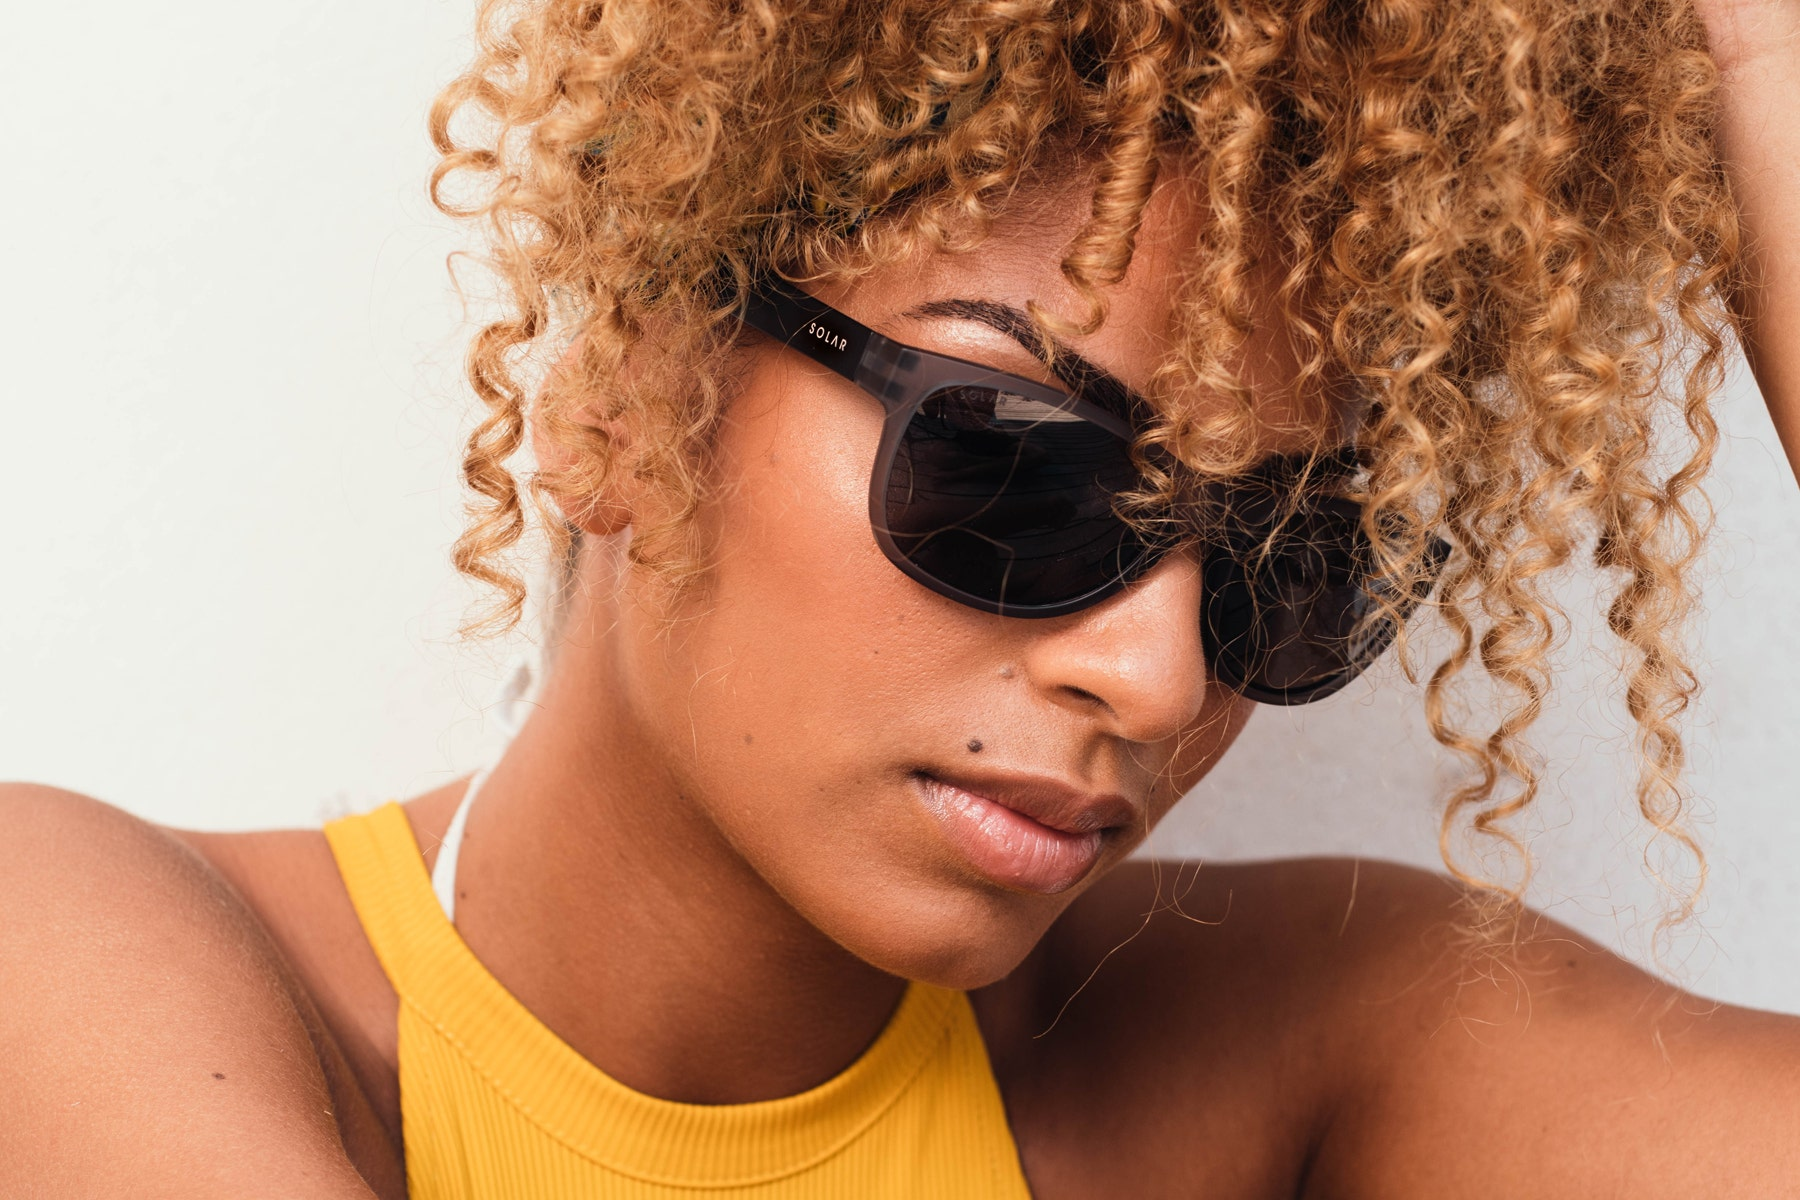 Polarised sunglasses and goggles for women